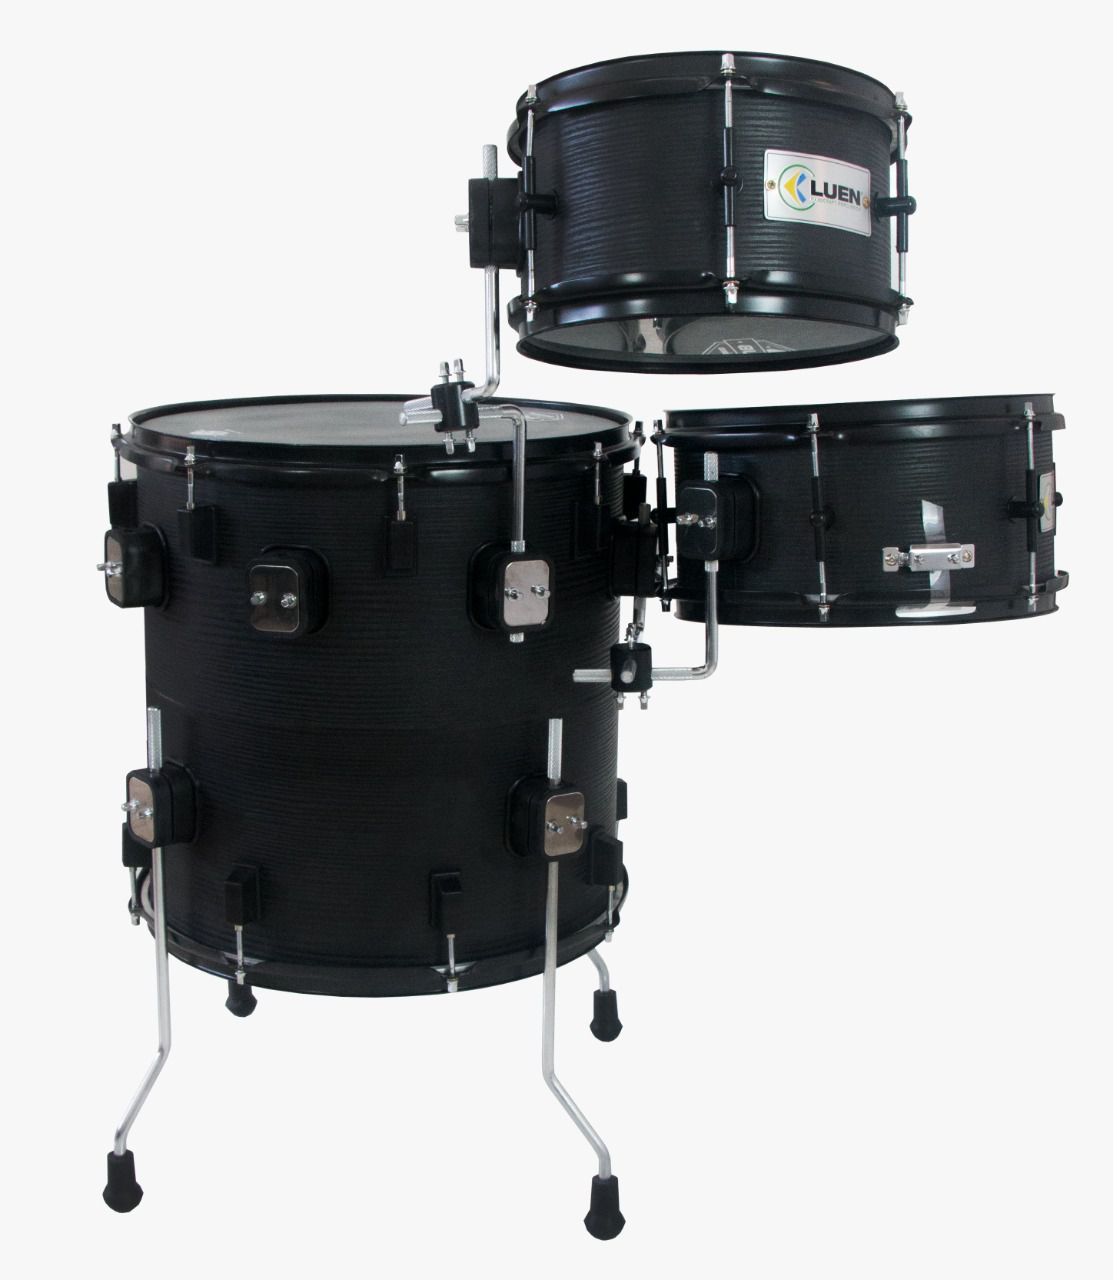 "BATERIA COMPACTA PUB THE VERTICAL DRUM OAK BLACK - COMPOSTA POR SURDO/BUMBO 16"", CAIXA 12"" E TOM 10"" PELE COATED PREMIUM  - ROOSTERMUSIC"